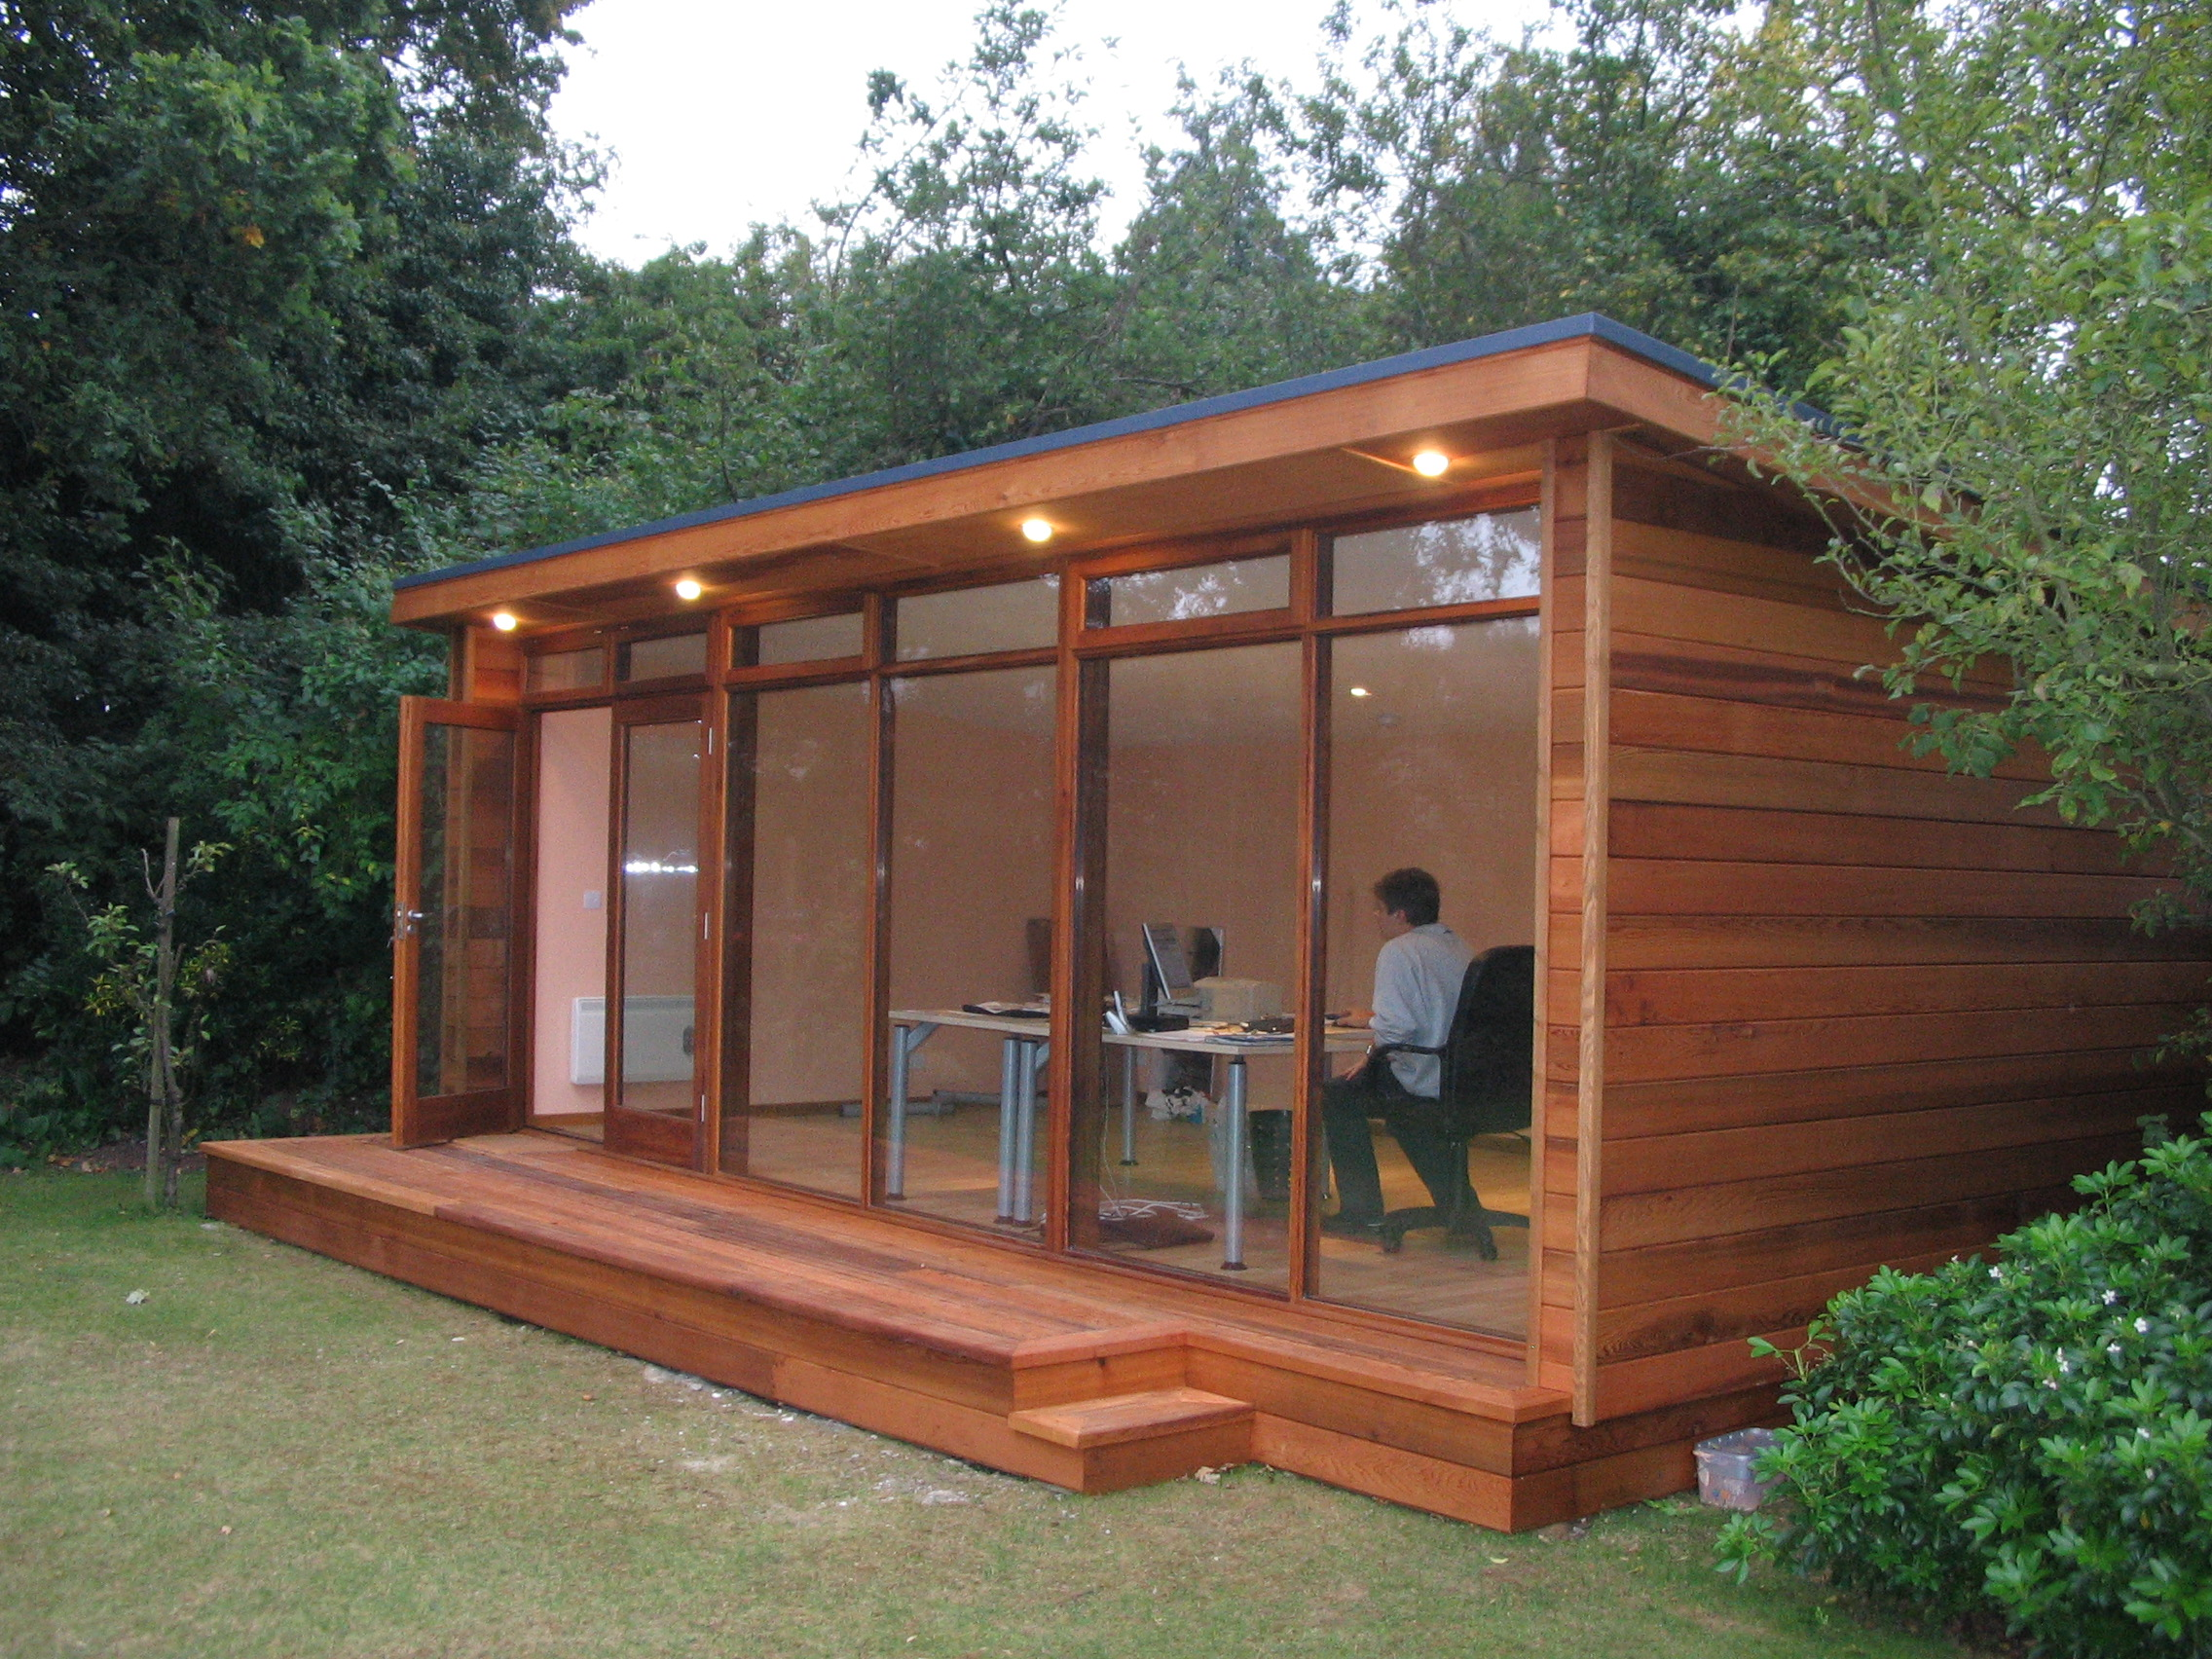 how to extend your phone range new garden office dstele home in the u